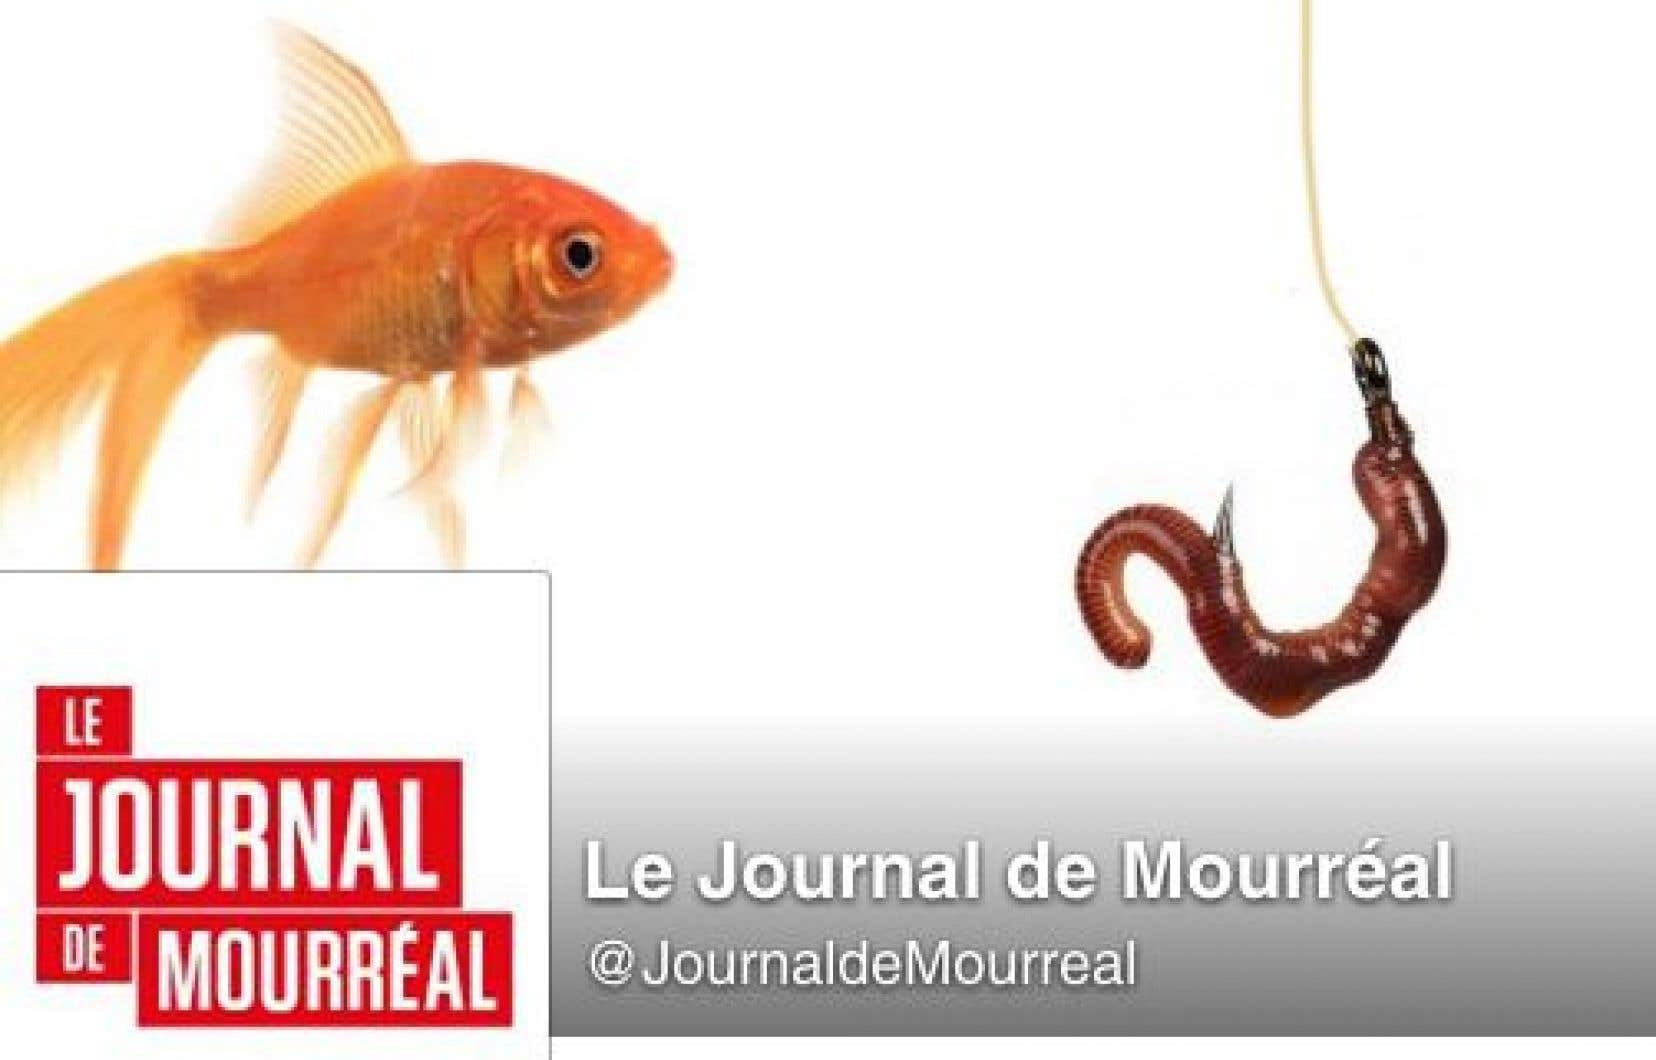 MédiaQMI demande au site satirique de cesser la diffusion — sur Facebook, sur le Web ou en version papier — de publications portant le nom Journal de Mourréal.